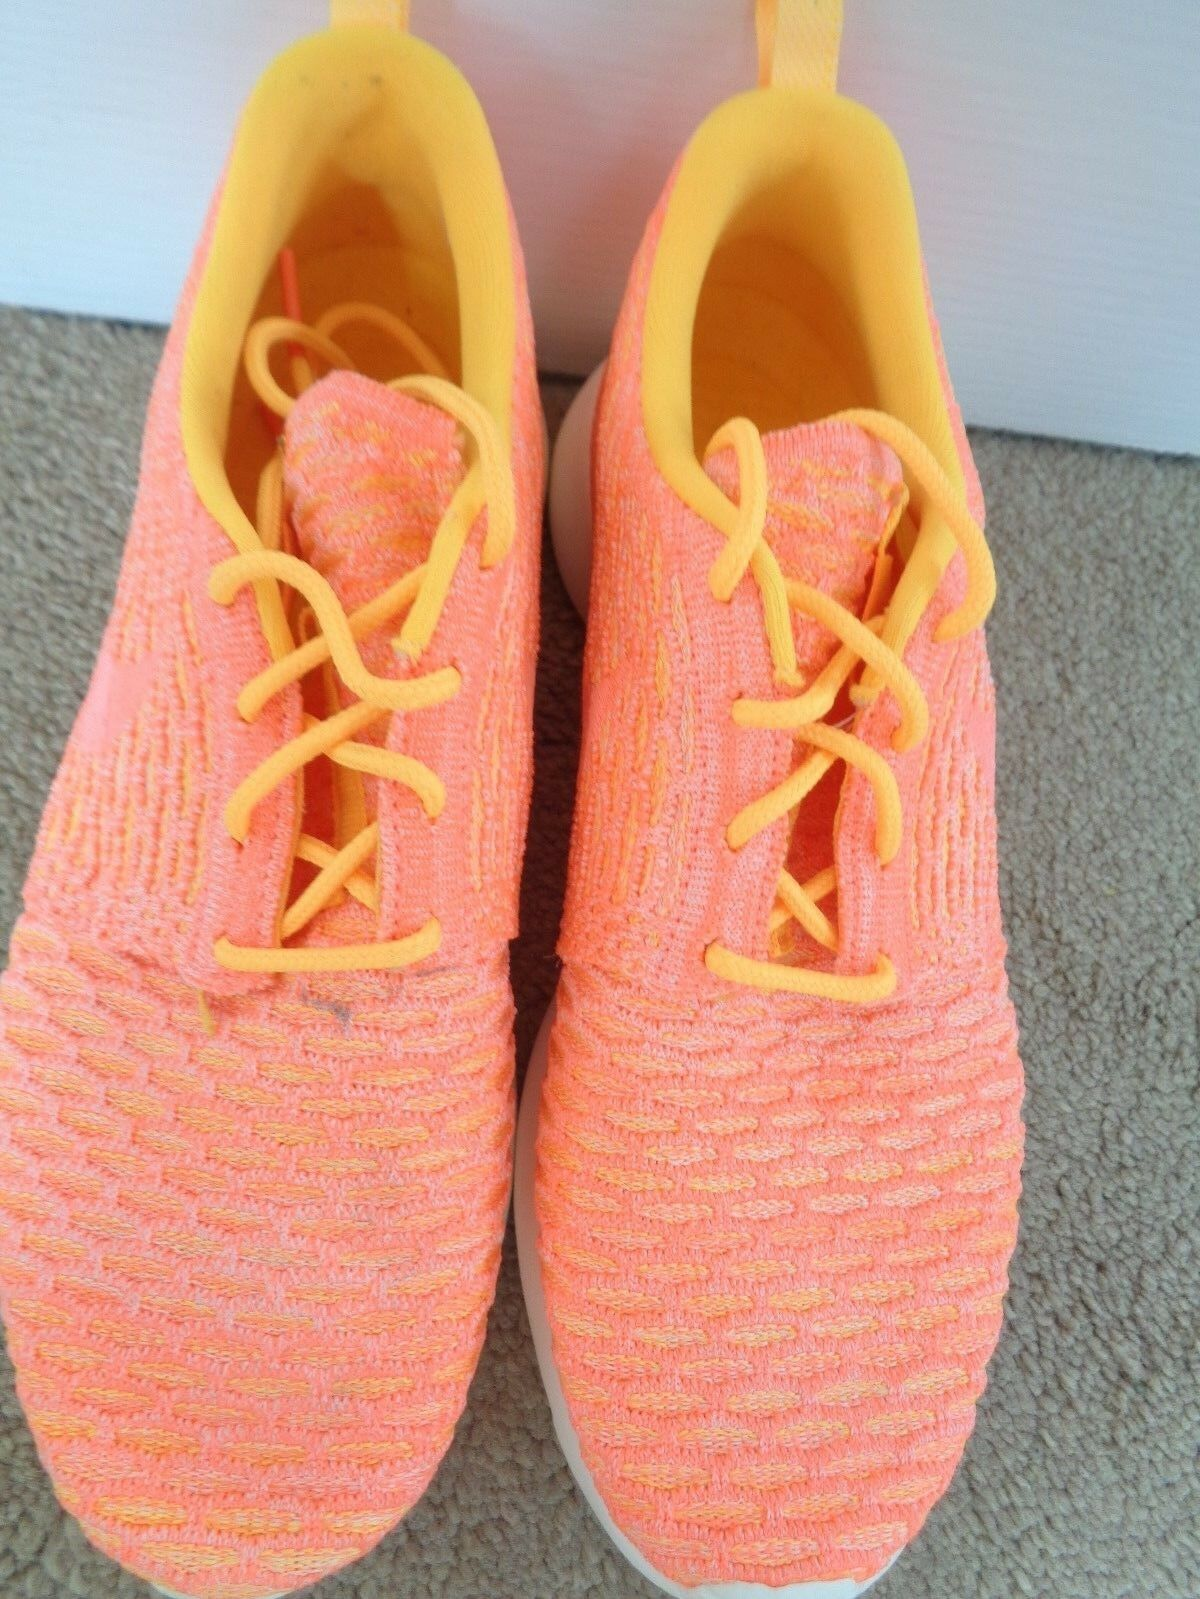 Nike Roshe One Flyknit wmns trainers 7 Turnschuhe 704927 802 uk 7 trainers eu 41 us 9.5 NEW 3112c9